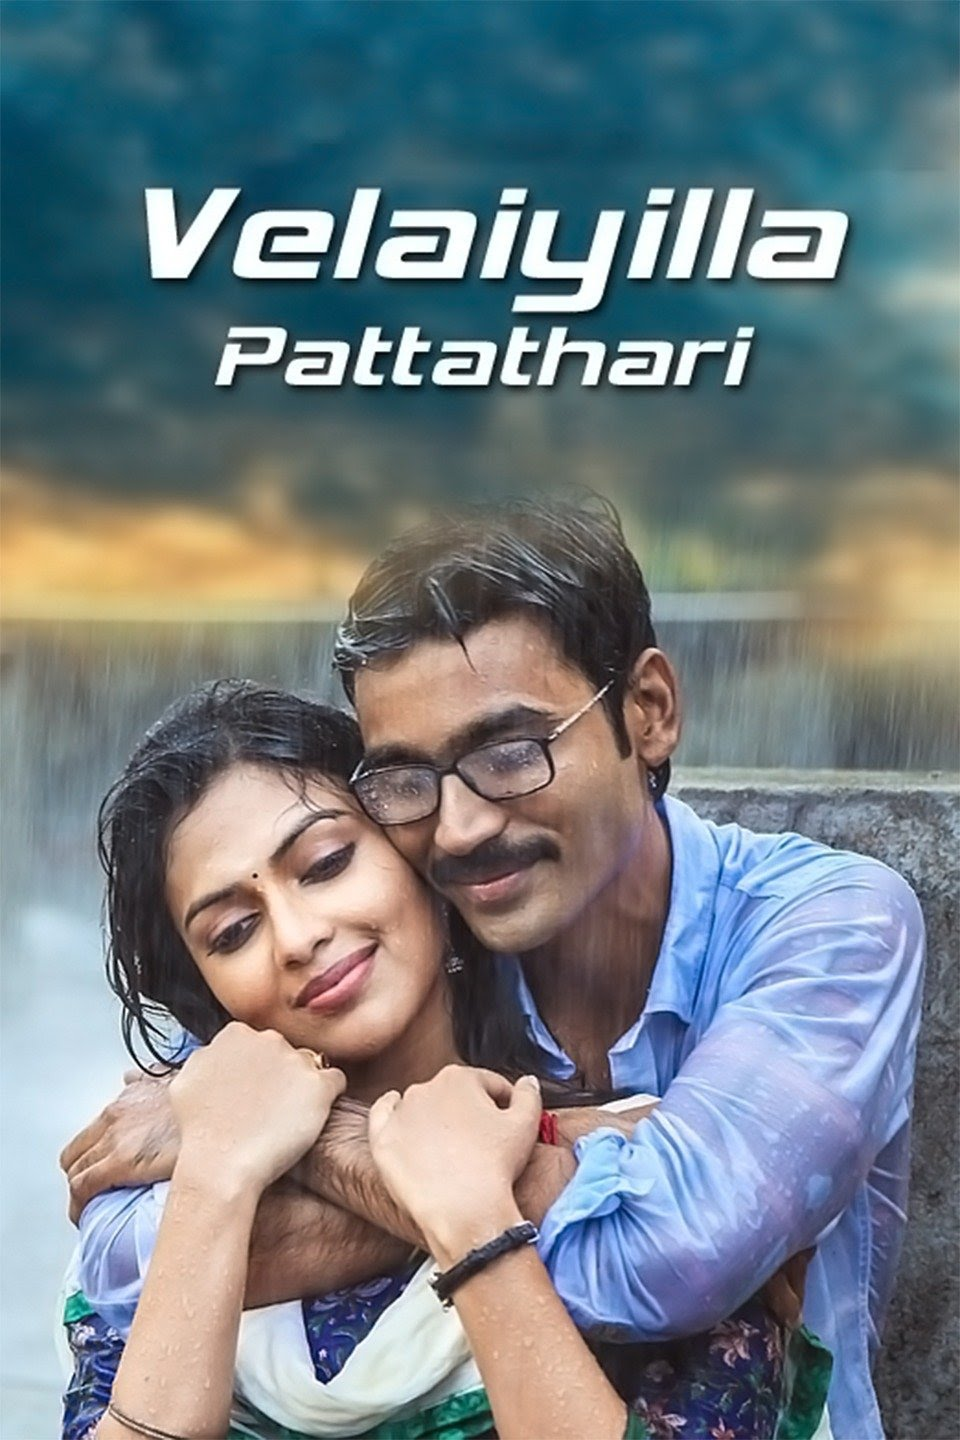 Velaiyilla Pattathari (VIP) 2014 Hindi Dual Audio 480MB UNCUT HDRip Download